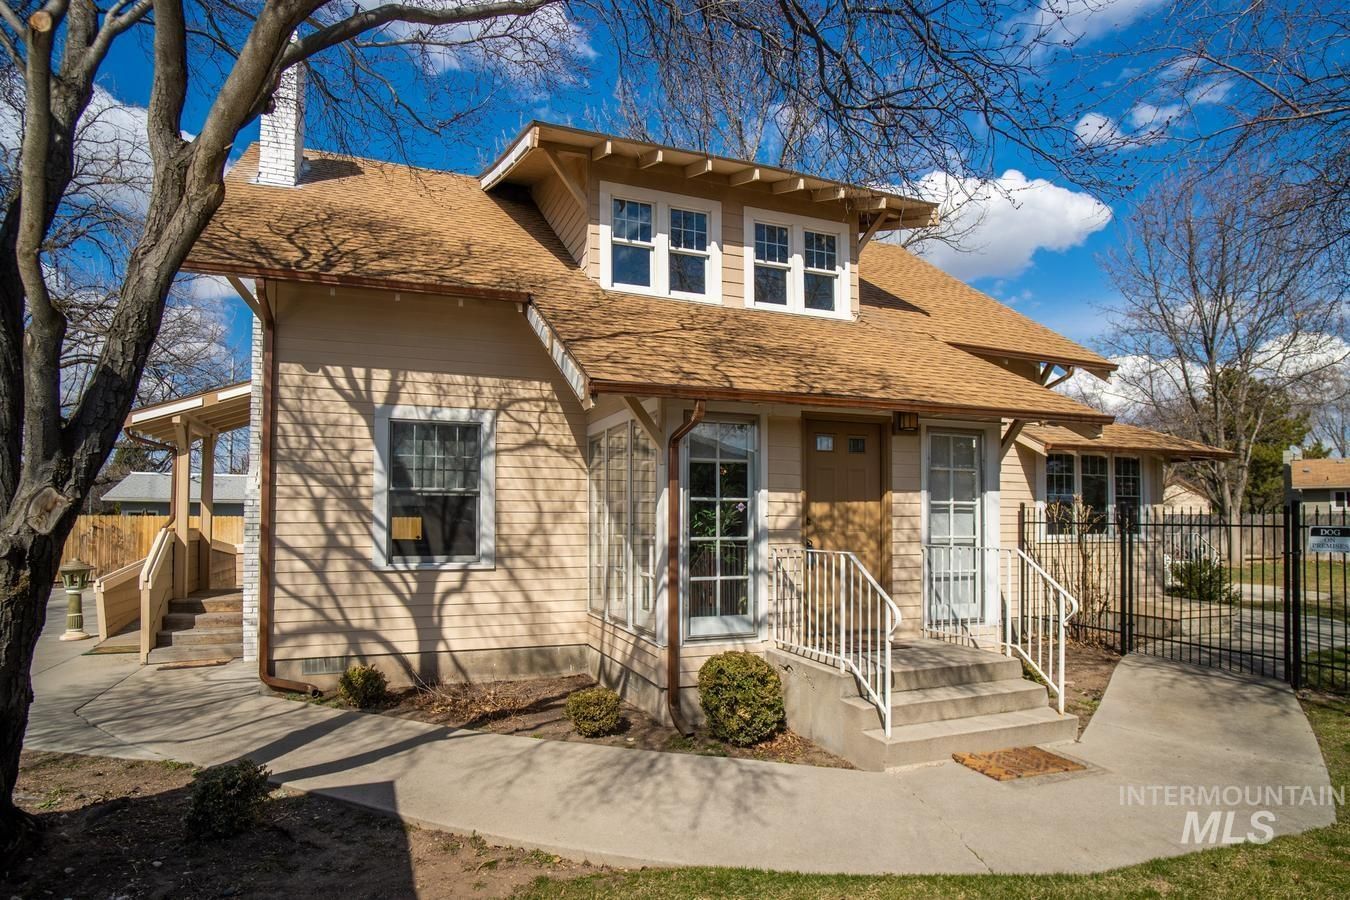 420 S Maple Grove Rd Property Photo - Boise, ID real estate listing